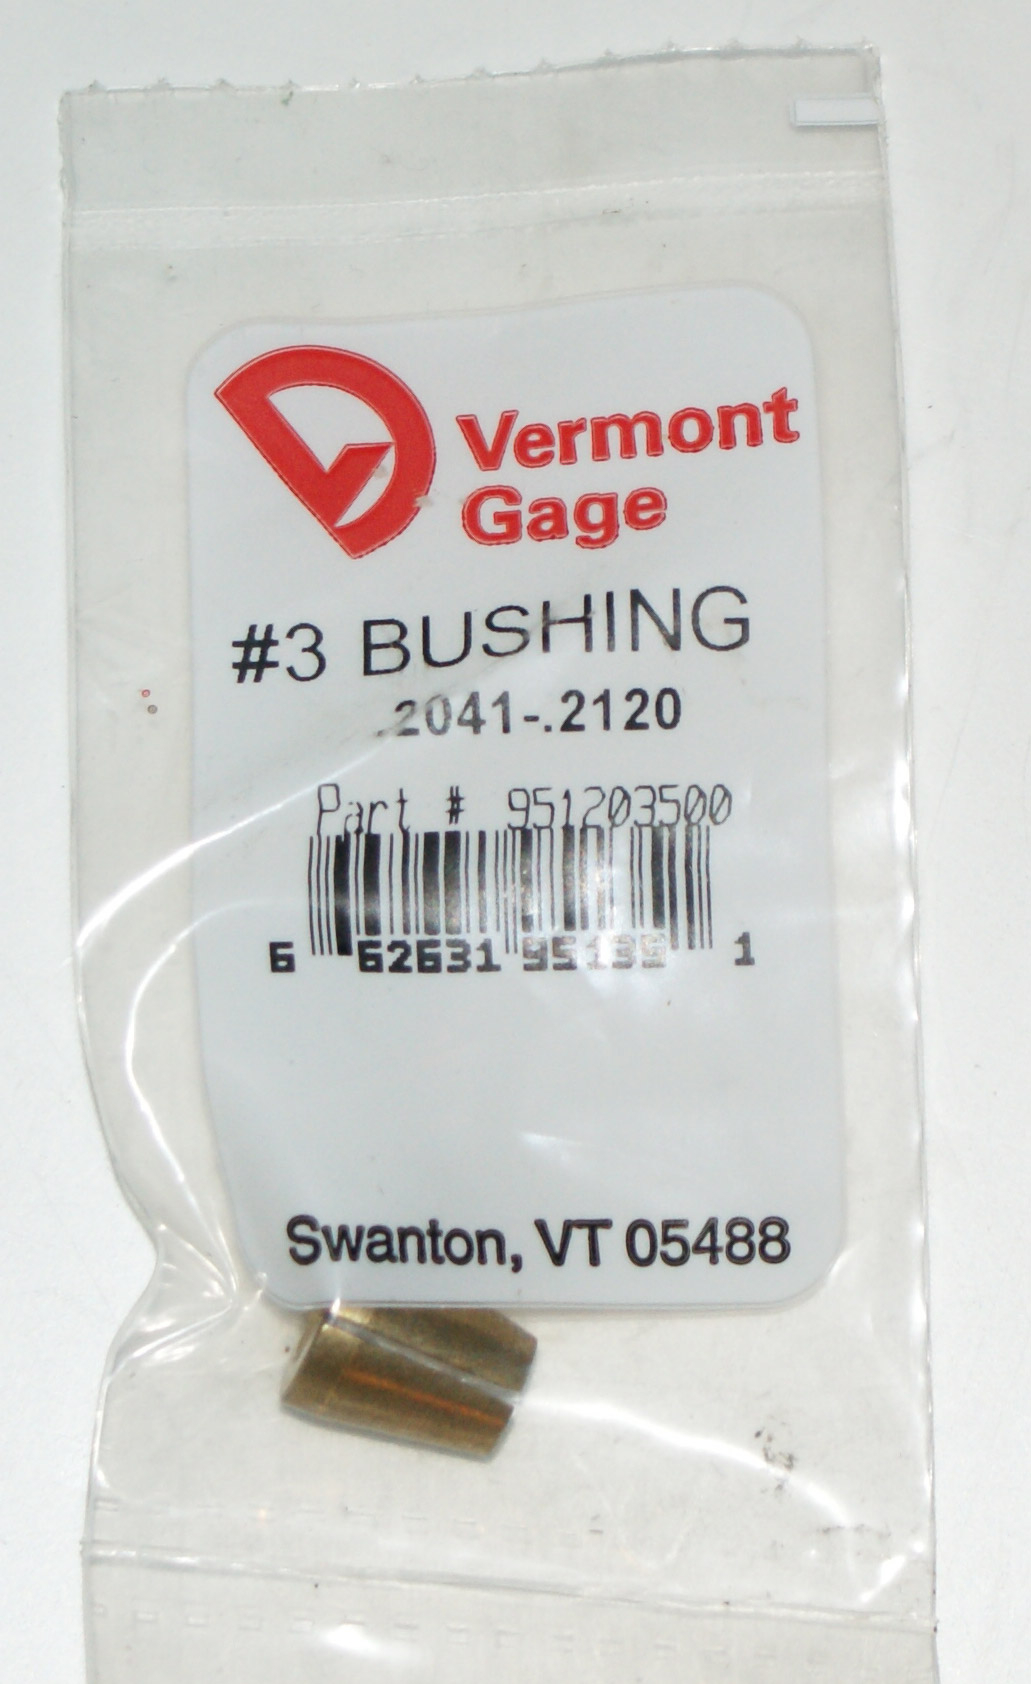 "Vermont Gage .2041-2120"" #3 Bushing / Collet Pin"